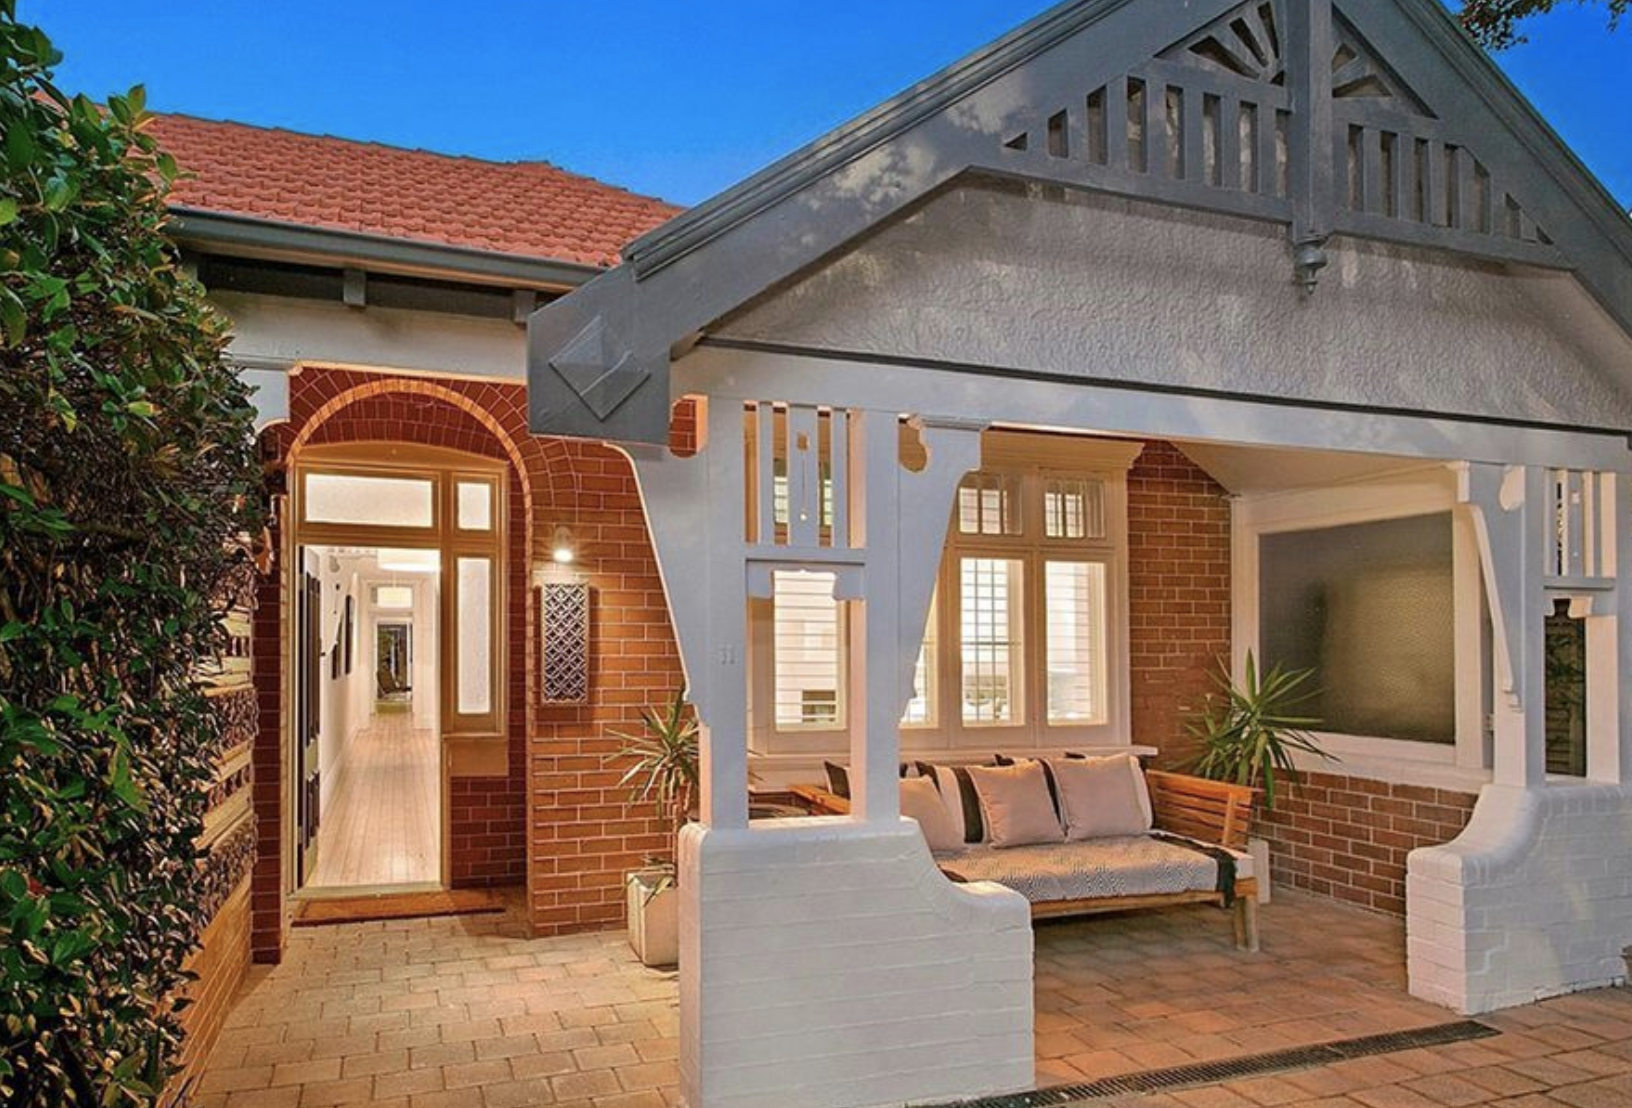 11 Muston St, Mosman achieved $2.89 in April 2019.